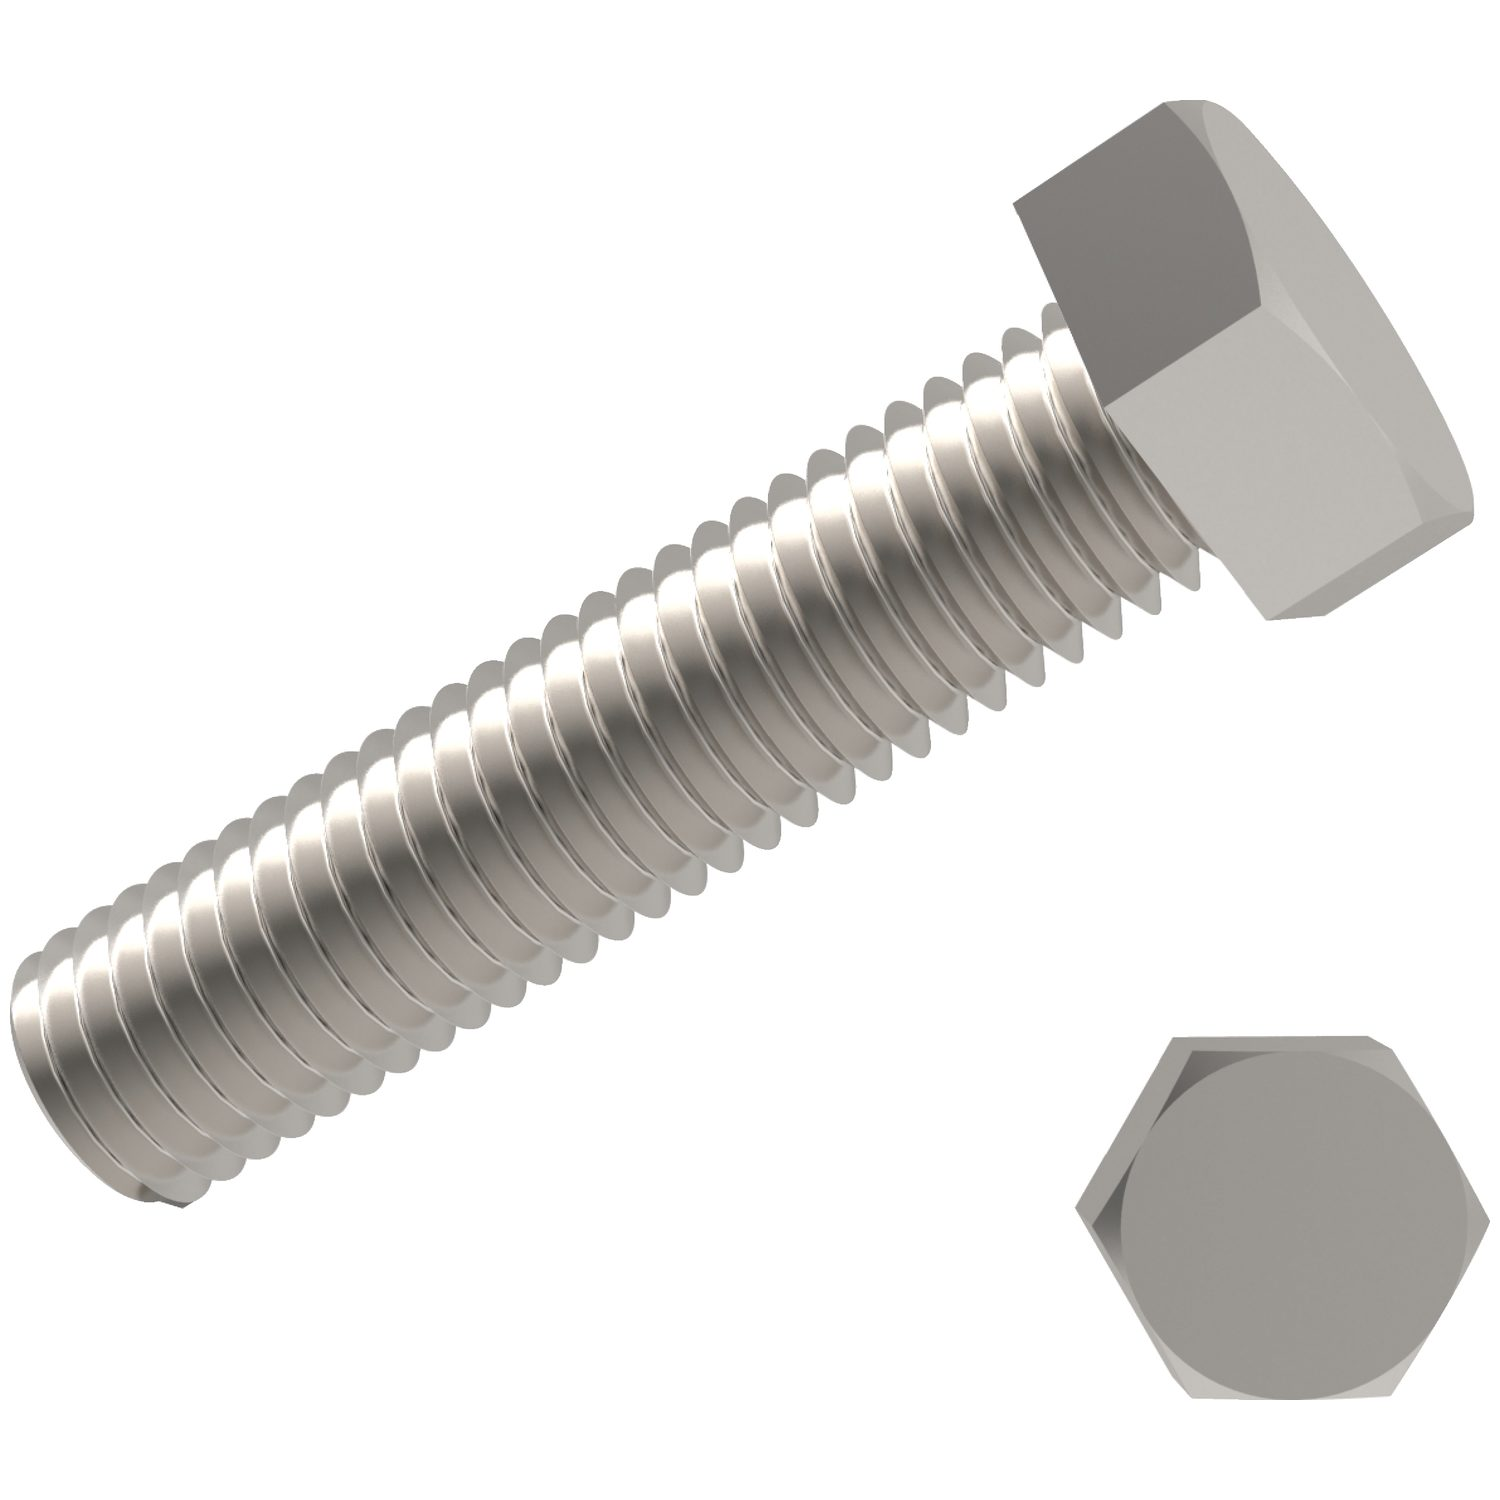 P0260.ZP - Hexagon Head Set Screws